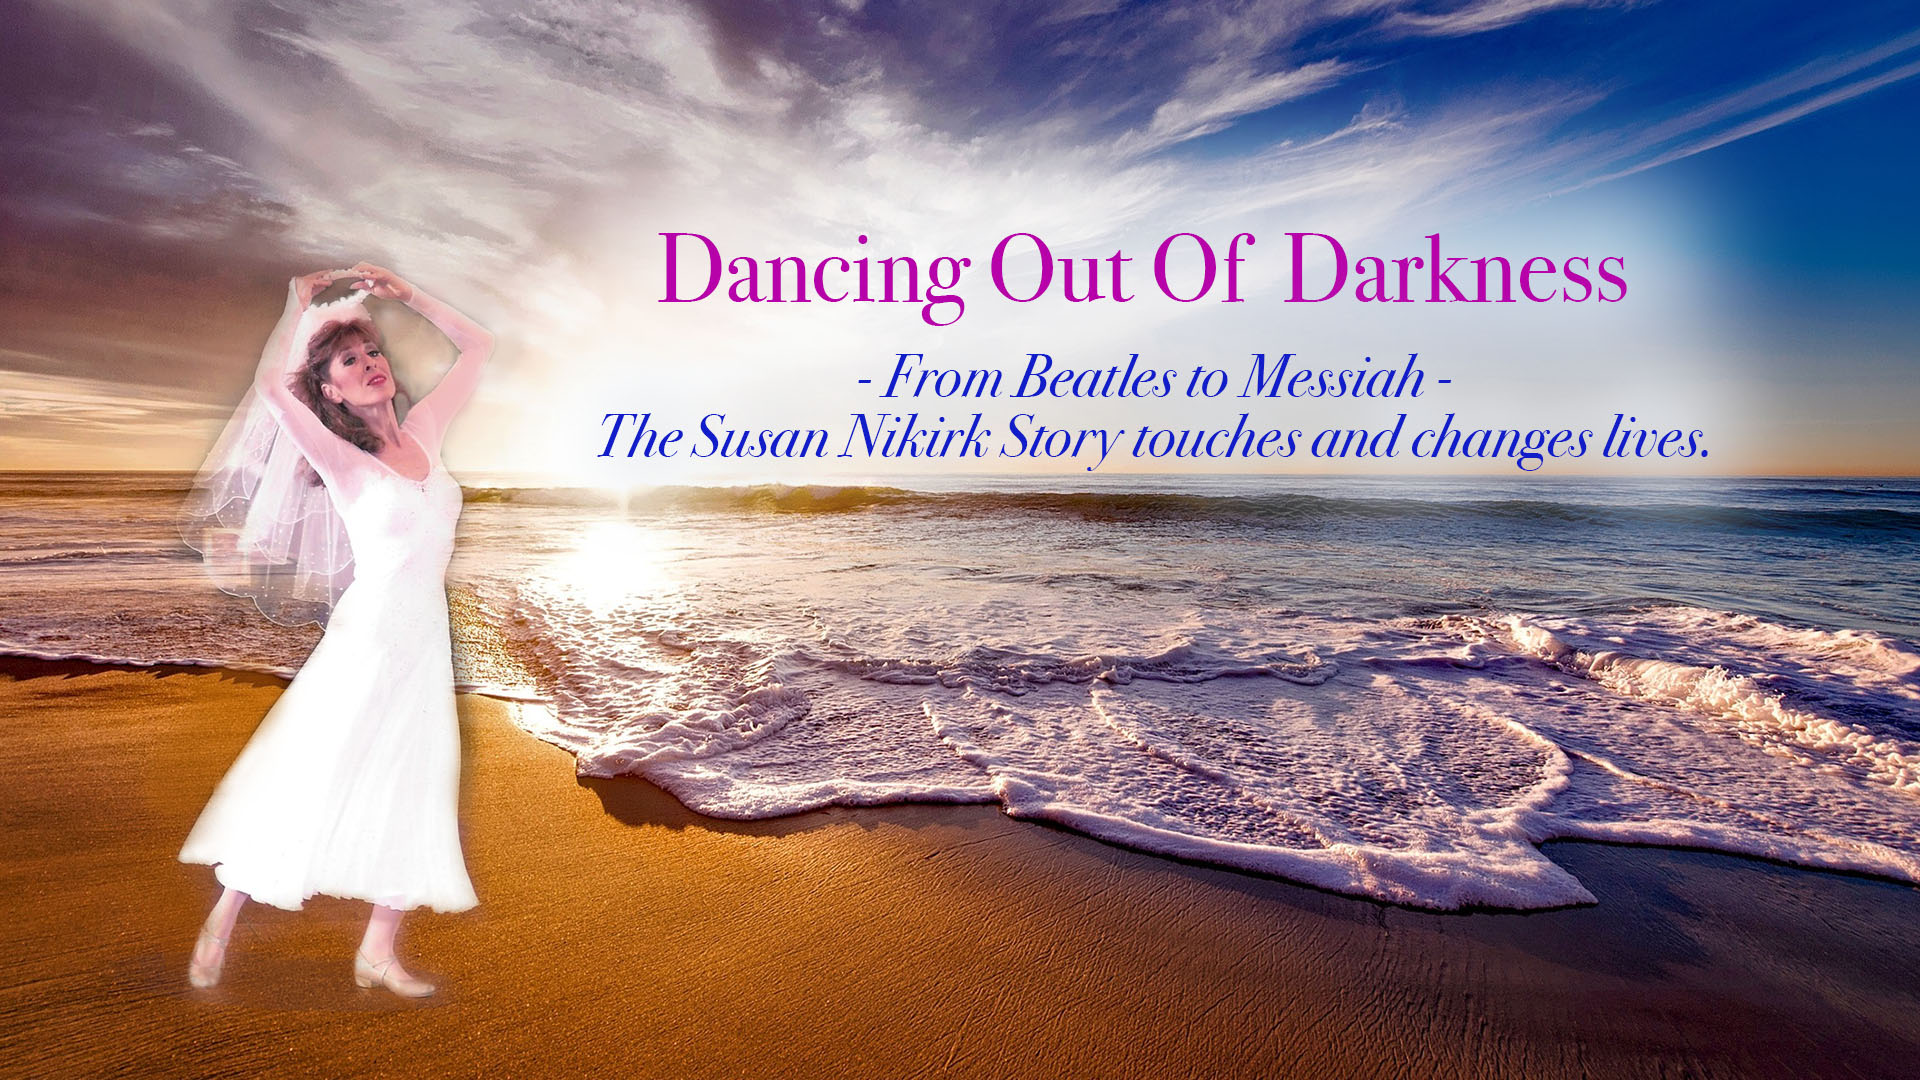 Dancing out of darkness